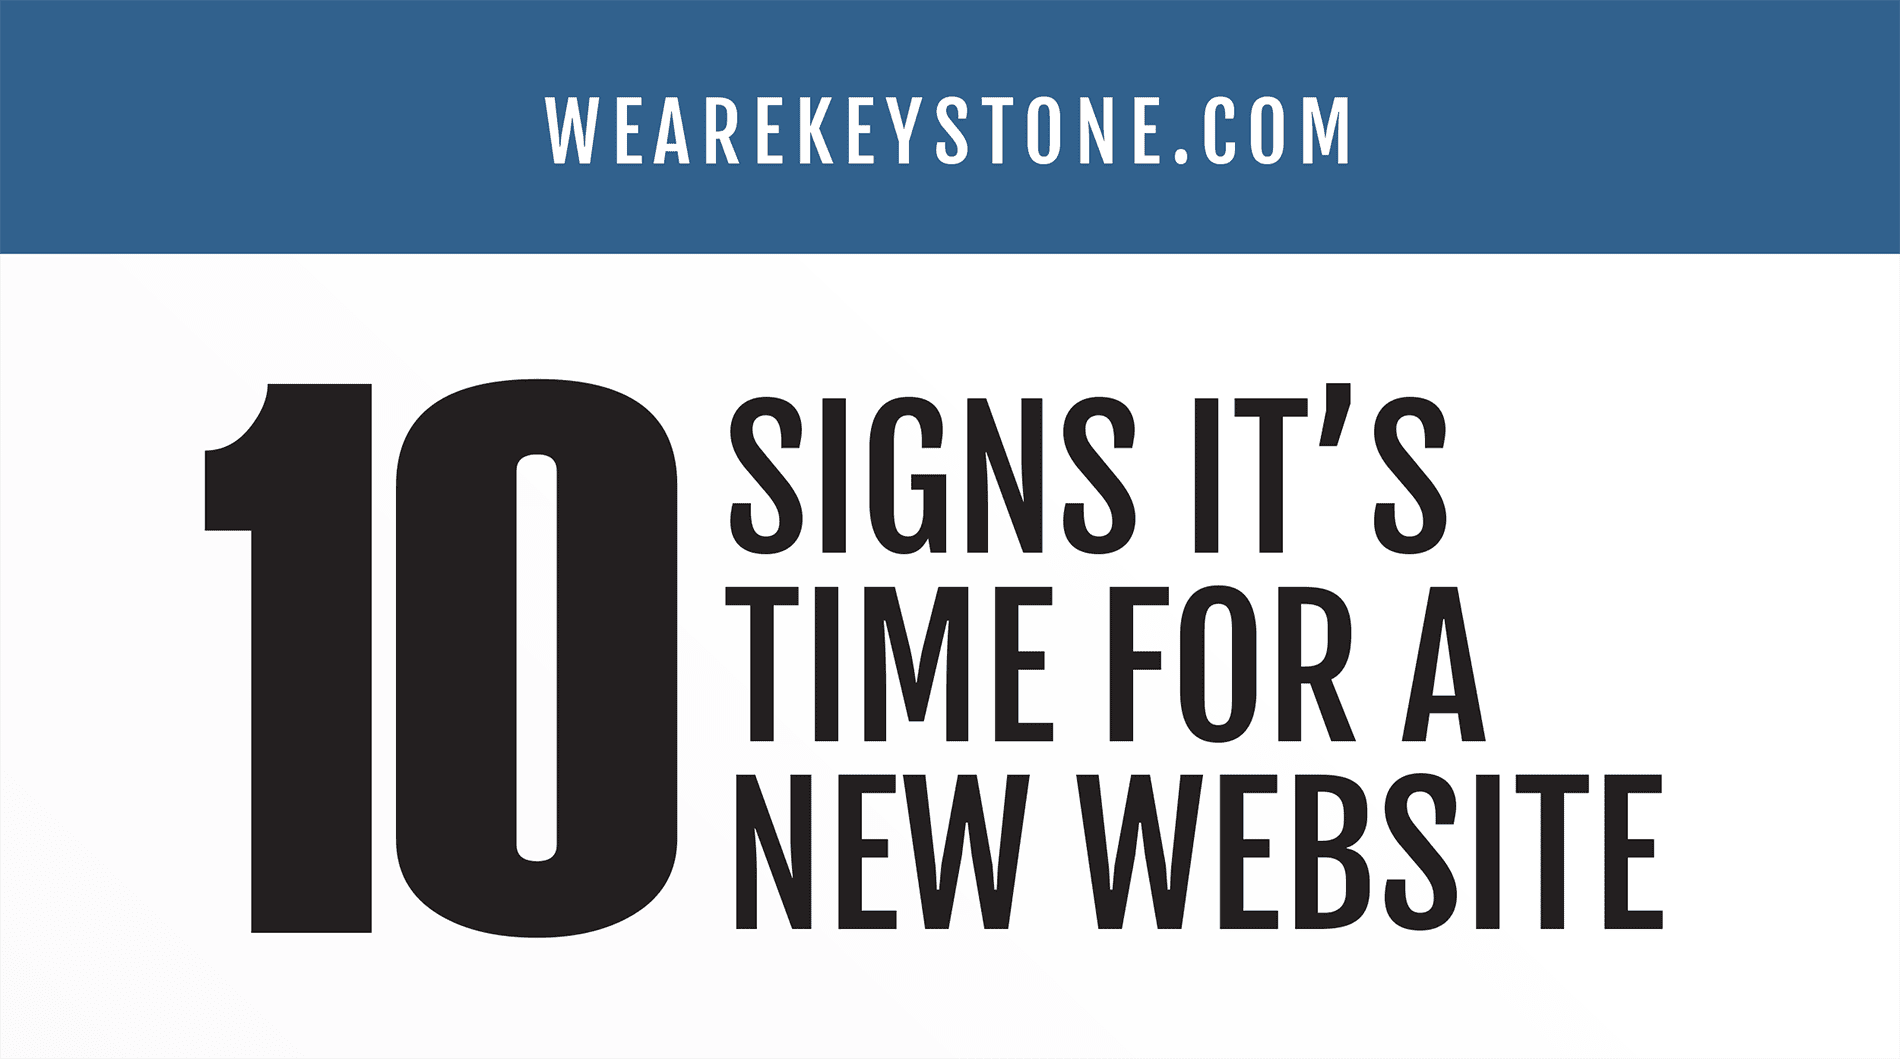 signs it's time for new website